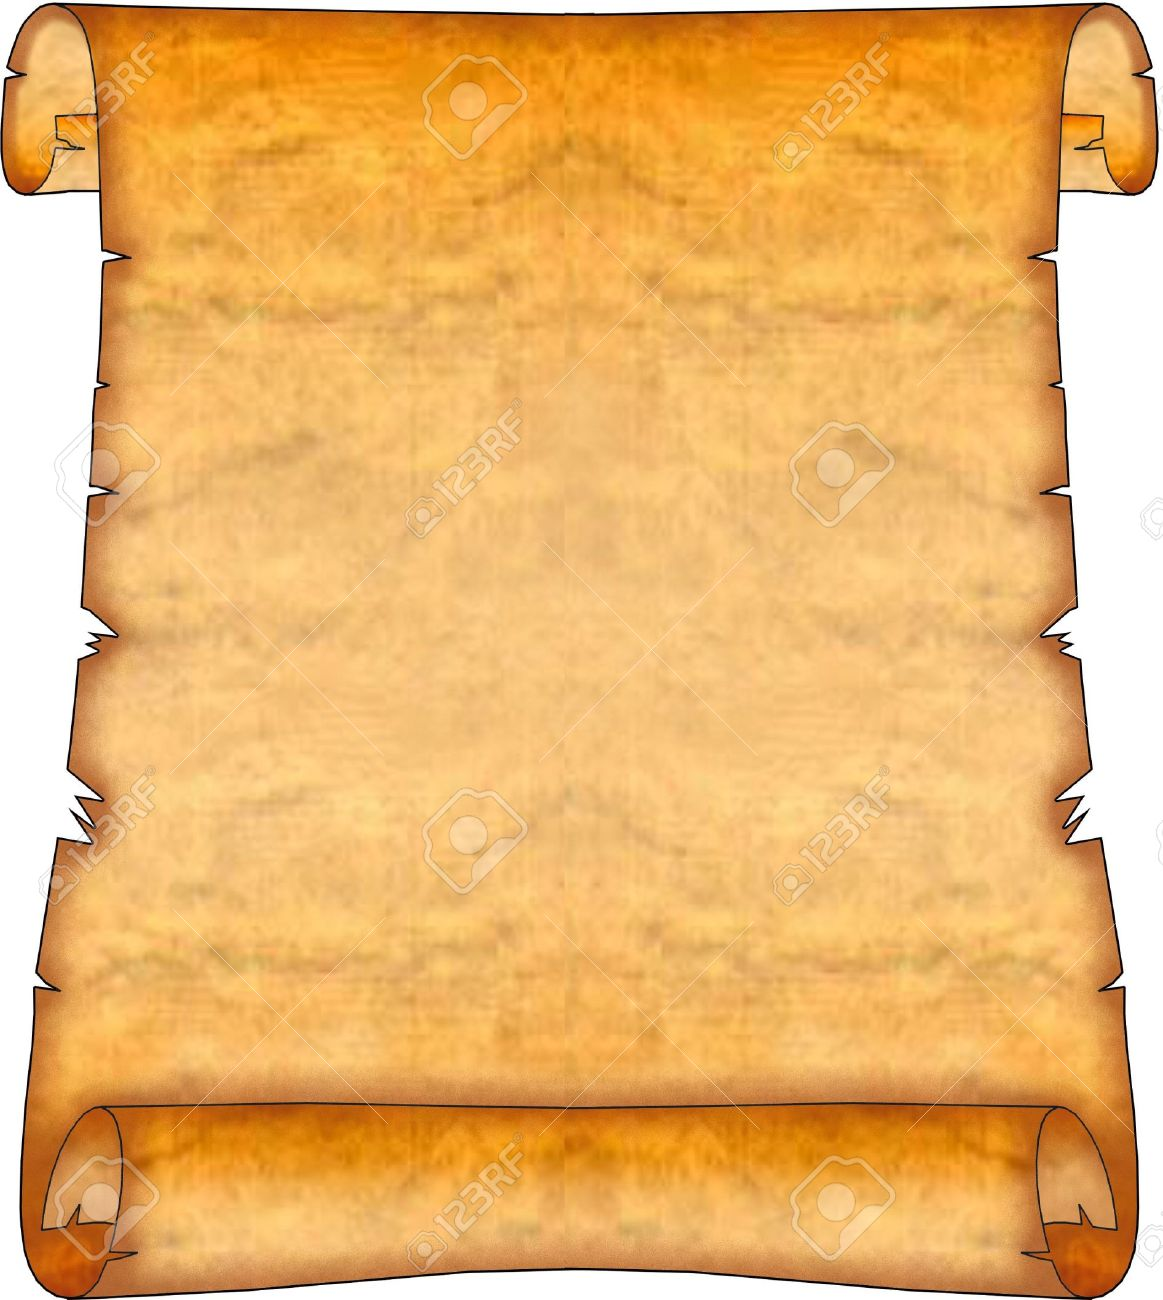 Ancient deed clipart freeuse stock Free Ancient Scroll Cliparts, Download Free Clip Art, Free Clip Art ... freeuse stock